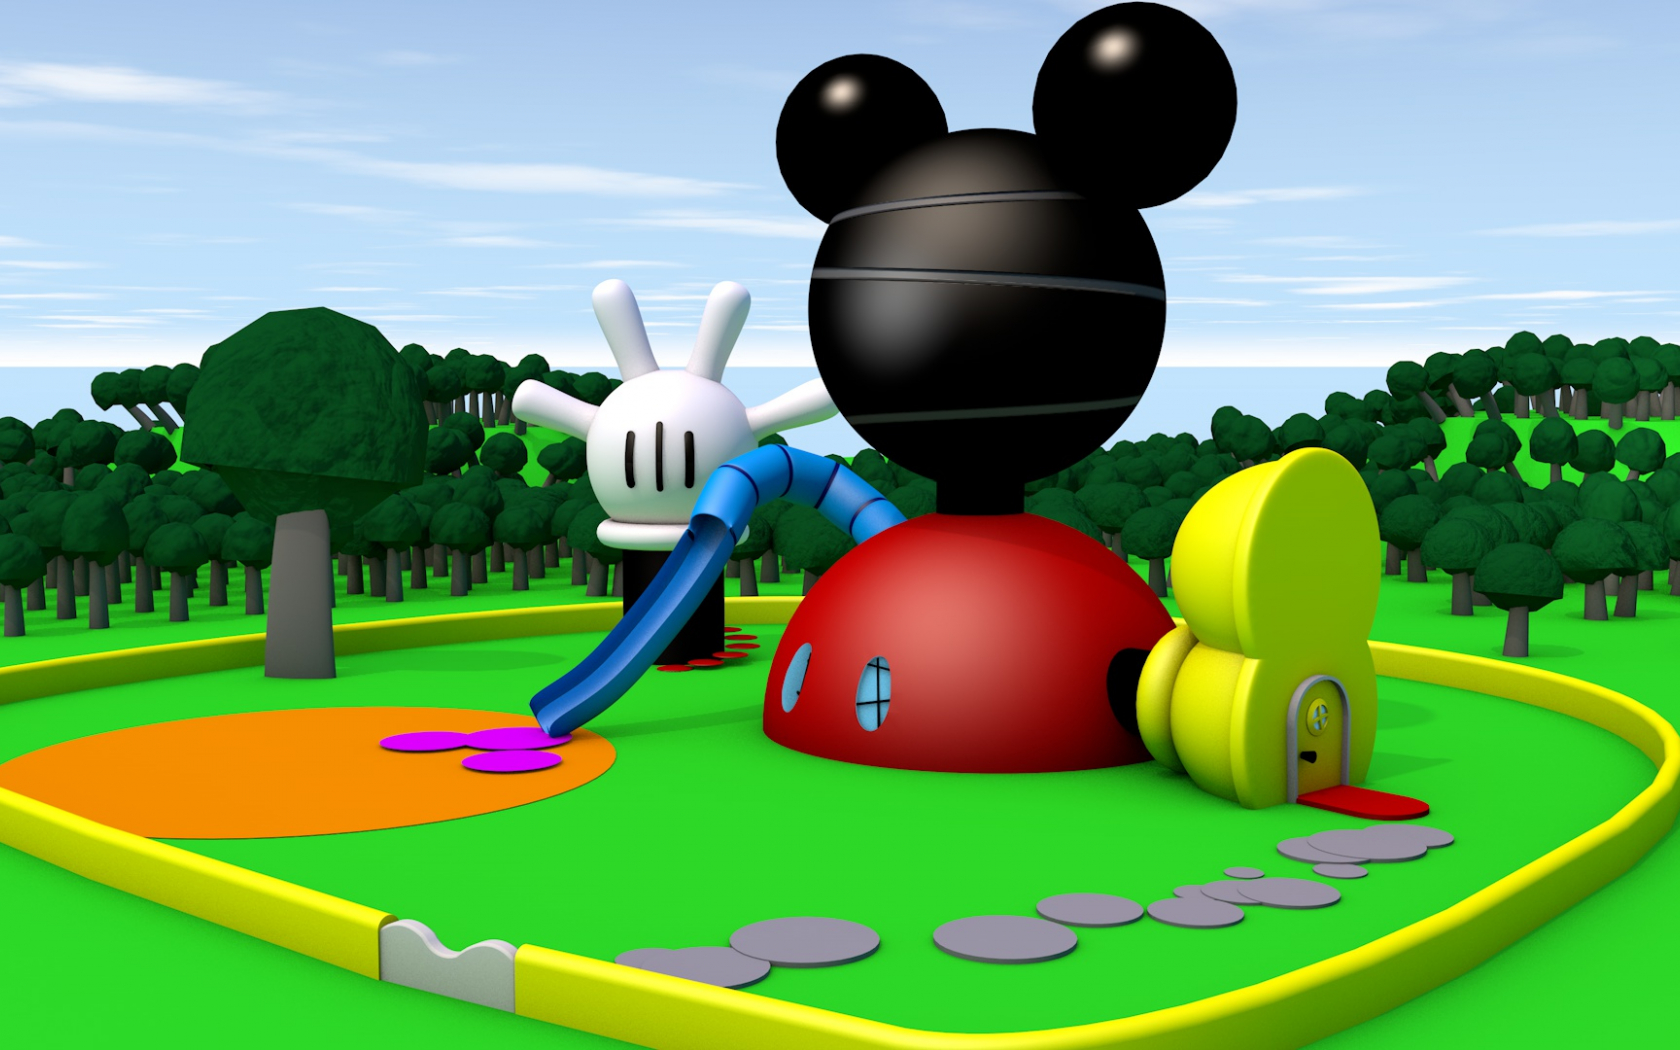 free download mickey mouse clubhouse 1920x1080 for your desktop mobile tablet explore 49 mickey mouse clubhouse wallpaper mickey wallpaper for walls mickey mouse clubhouse images wallpapers mickey mouse wallpapers free download mickey mouse clubhouse 1920x1080